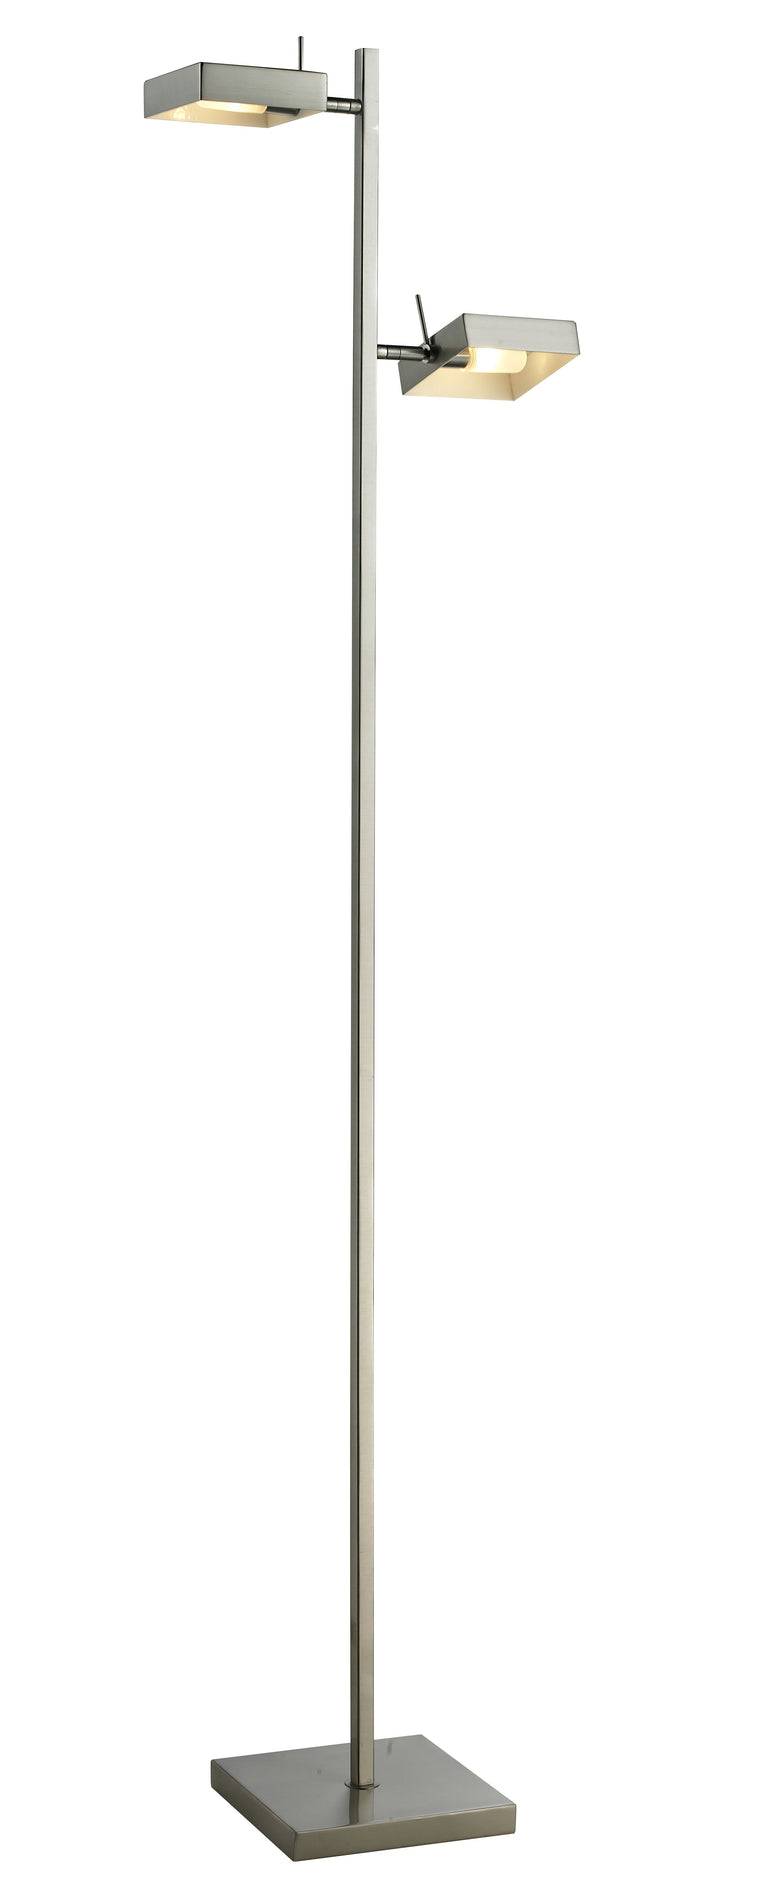 2 Light Floor Lamp